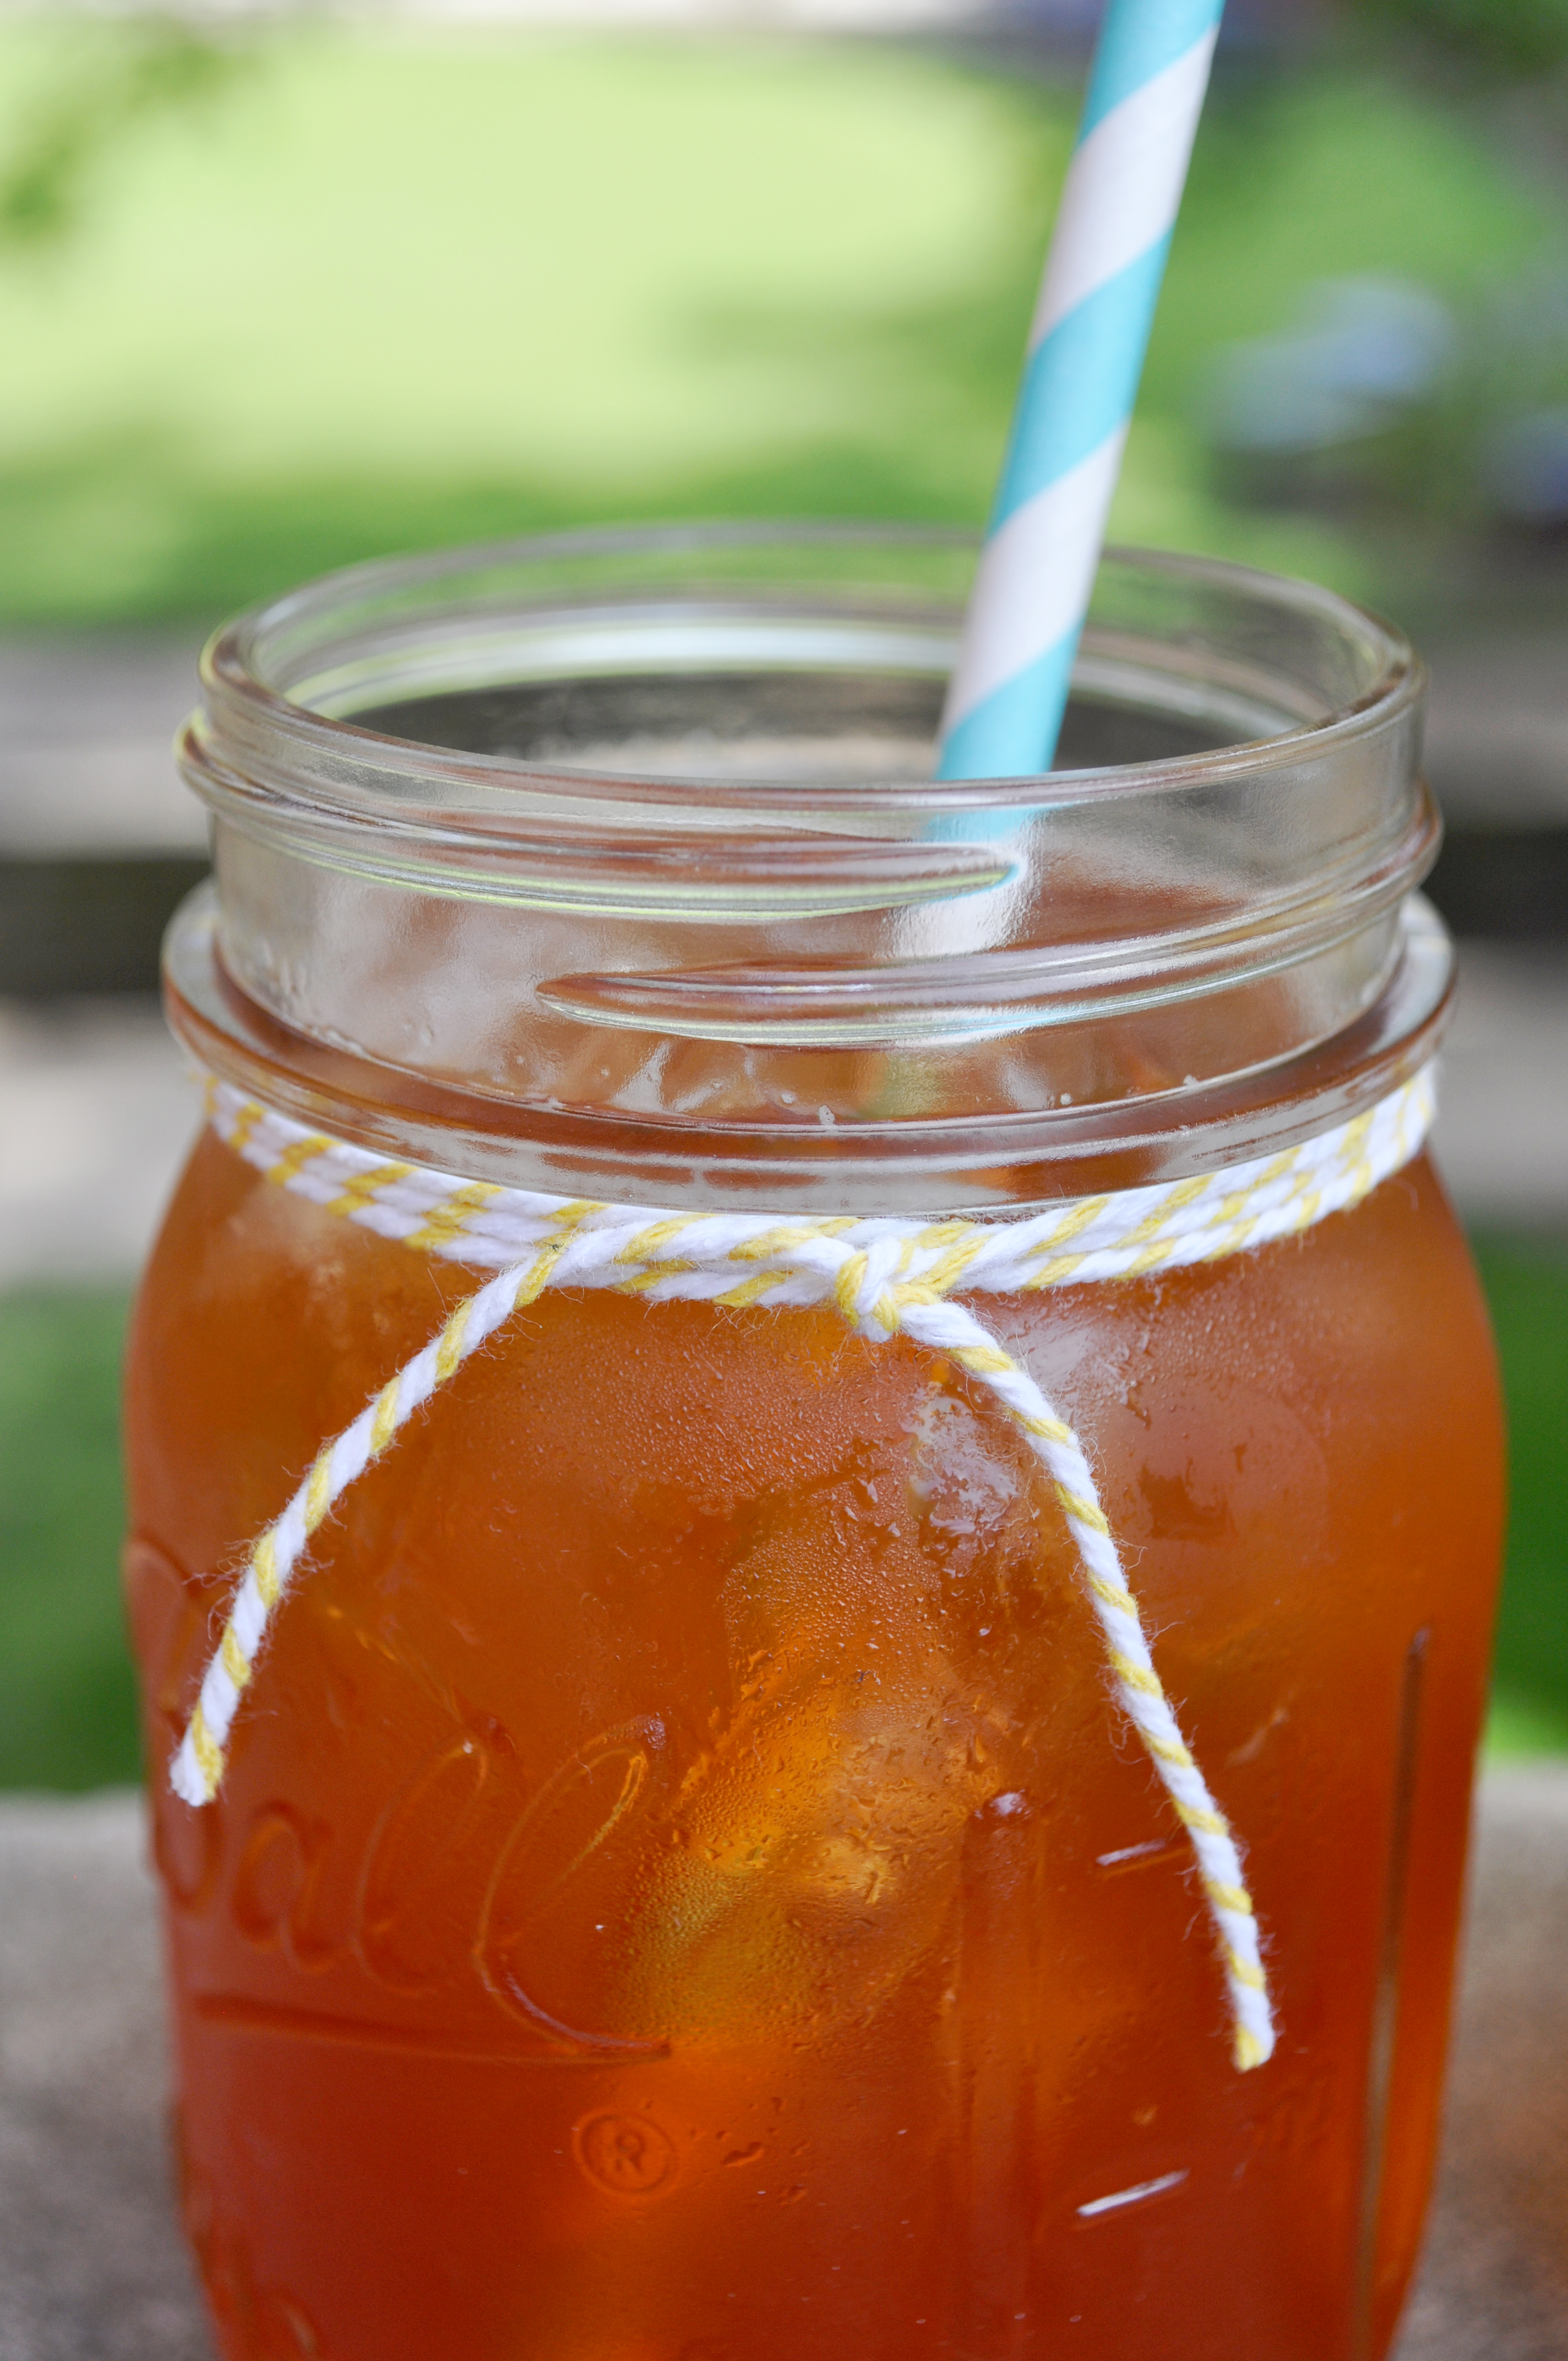 A New Way to Enjoy Iced Tea with Lipton - I am loving the delicious flavors of iced tea I can brew with Lipton K-Cups! {The Love Nerds} #bemoretea #PMedia #ad